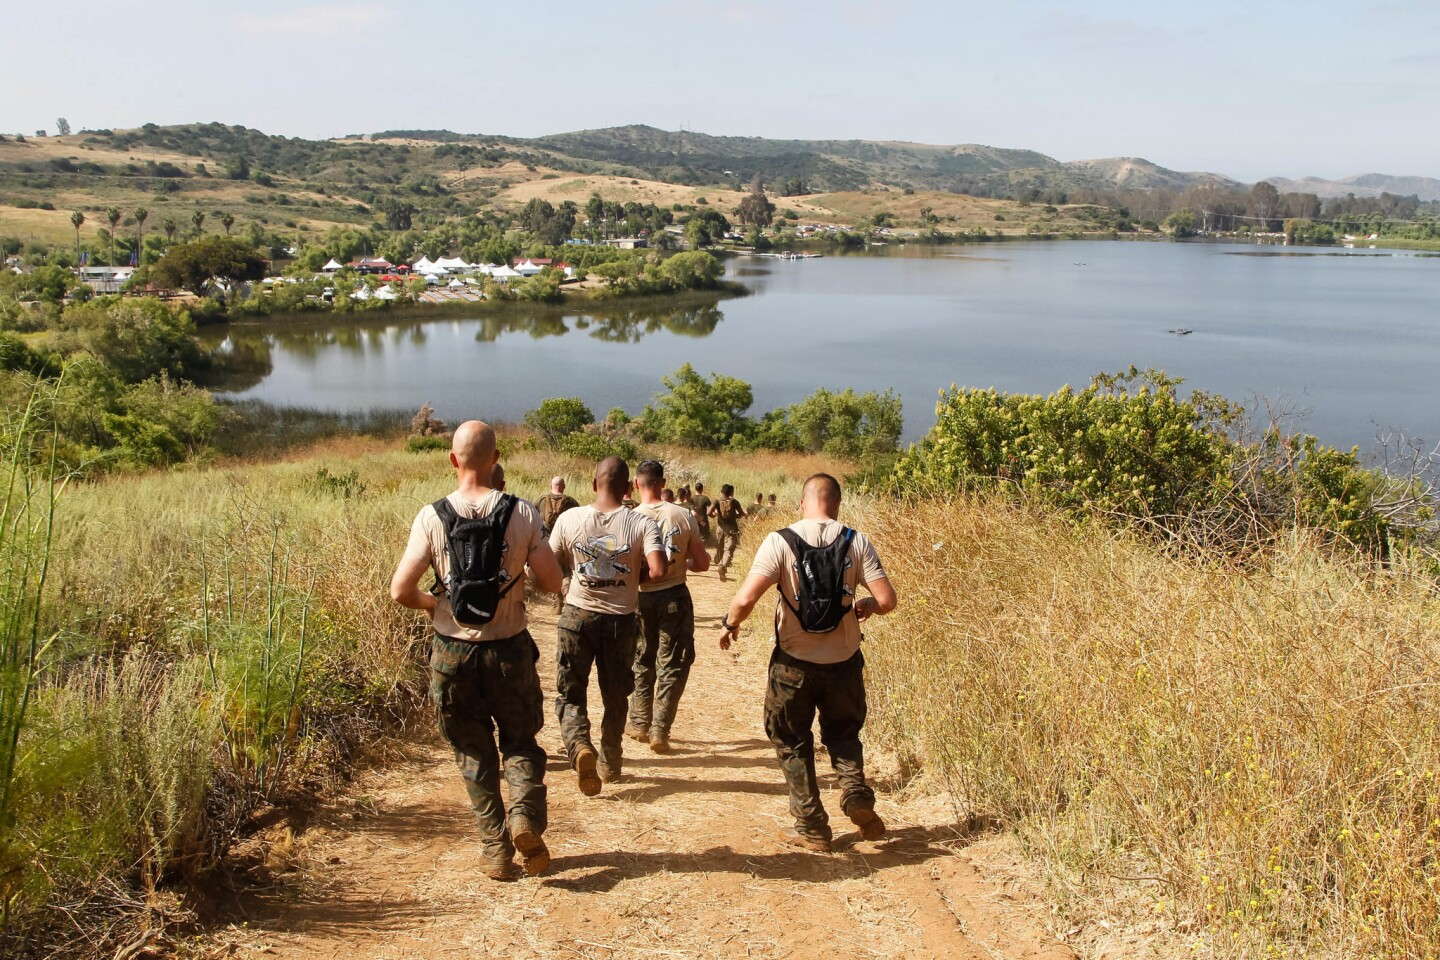 SAN DIEGO, CA June 9th, 2017   Participants run down a steep hill with Lake O'Neill in the background as they compete in the annual Marine Corps Mud Run on Friday morning at Camp Pendleton, California.   (Eduardo Contreras / San Diego Union-Tribune)